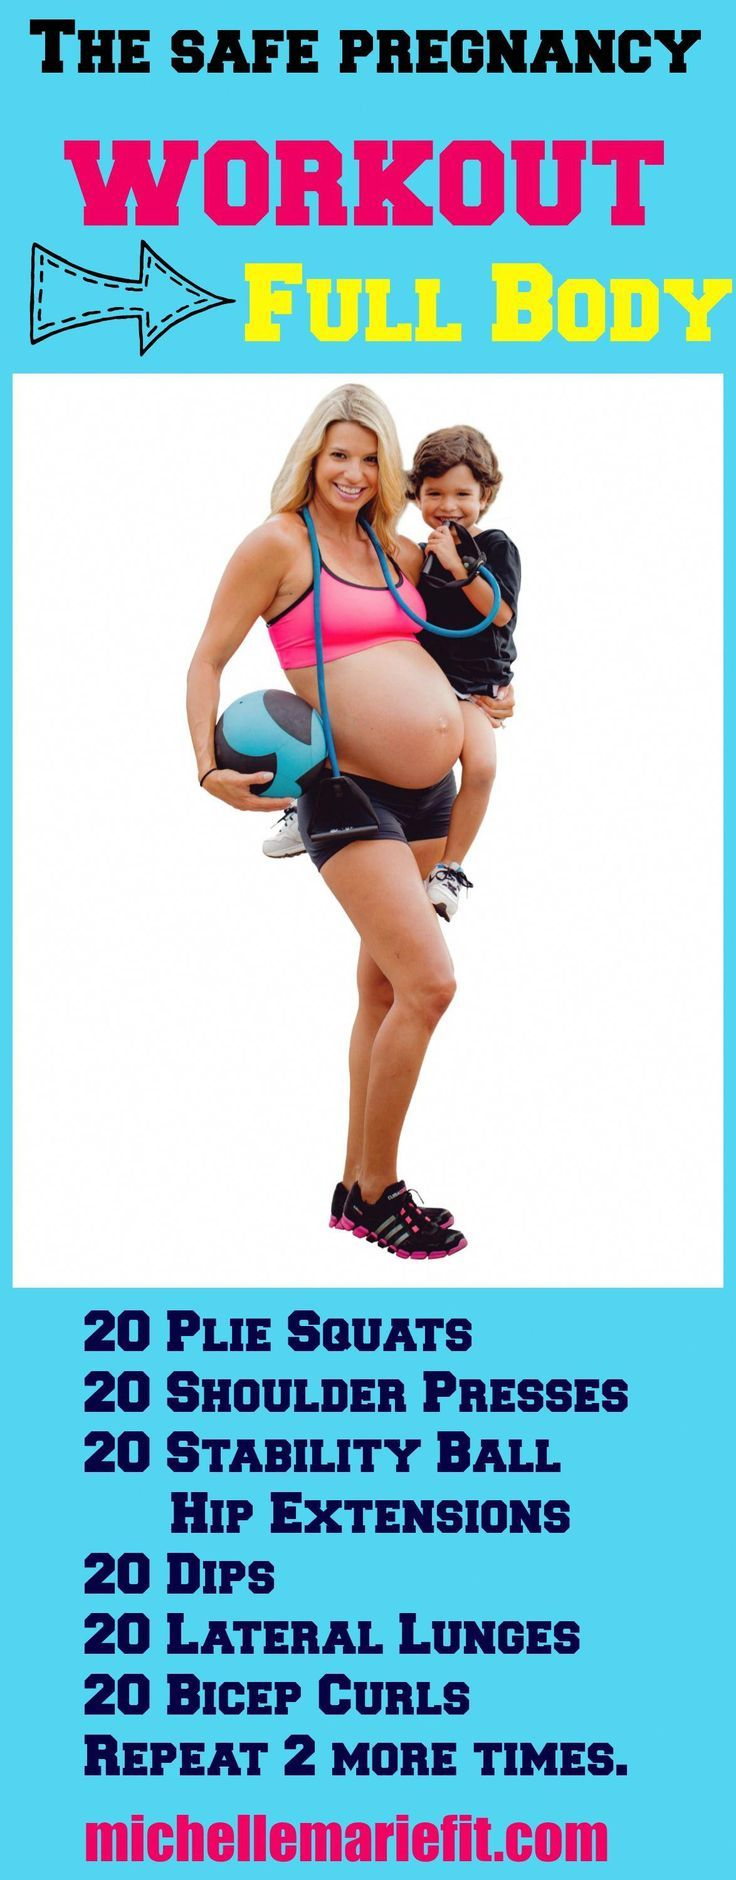 Awesome #pregnant detail are readily available on our website. Check it out and ... - #30min #abdomi...